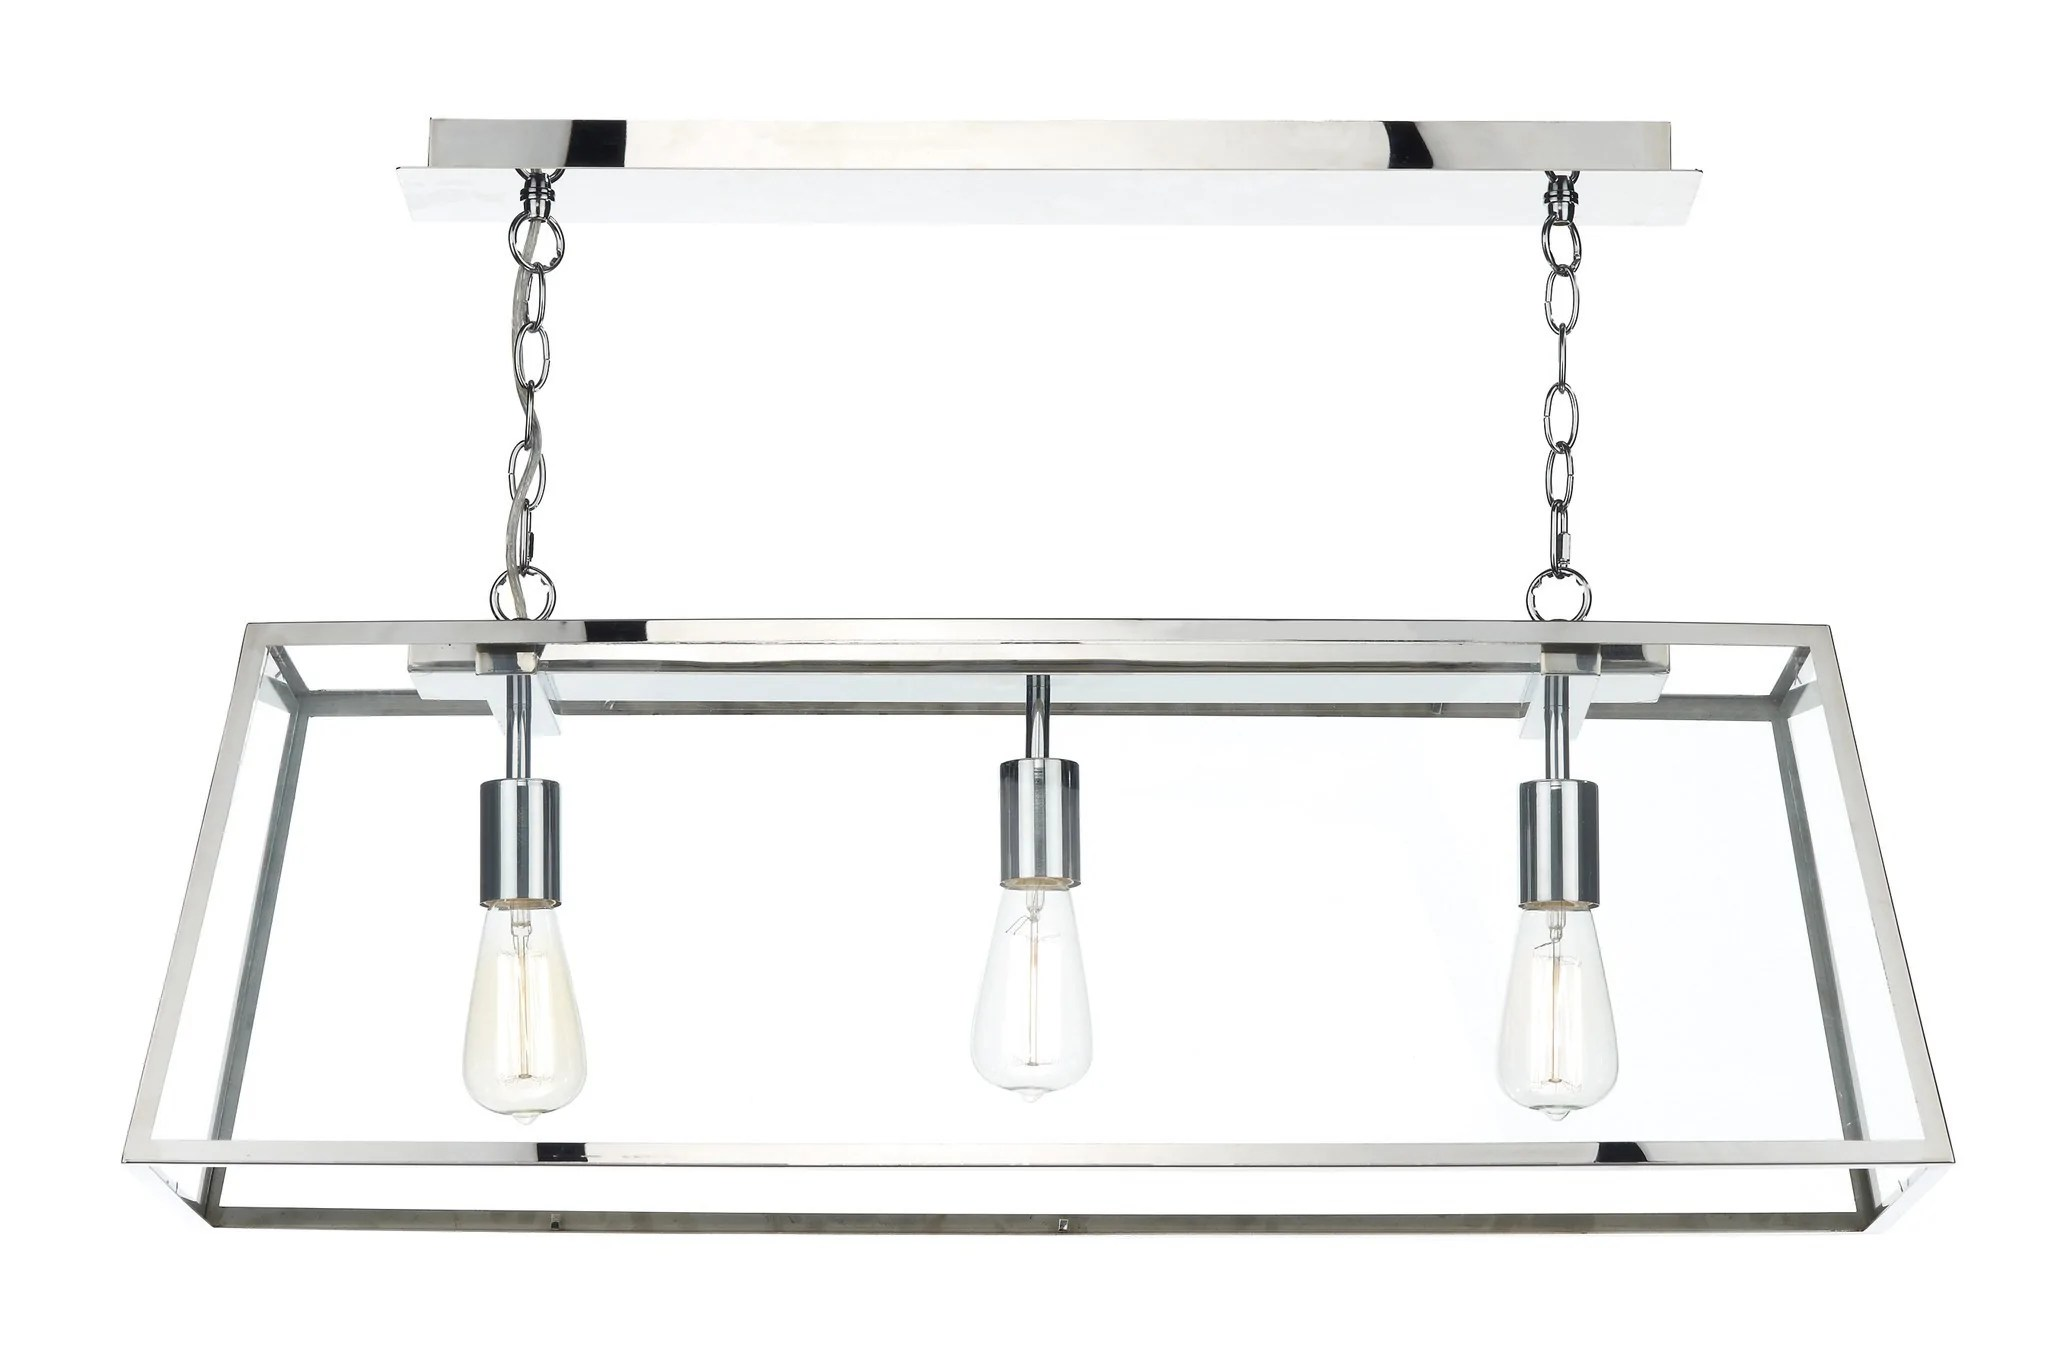 dar academy stainless steel 3 lamp ceiling light kitchen ceiling lighting Academy Stainless Steel 3 Lamp Ceiling Light London Lighting 1